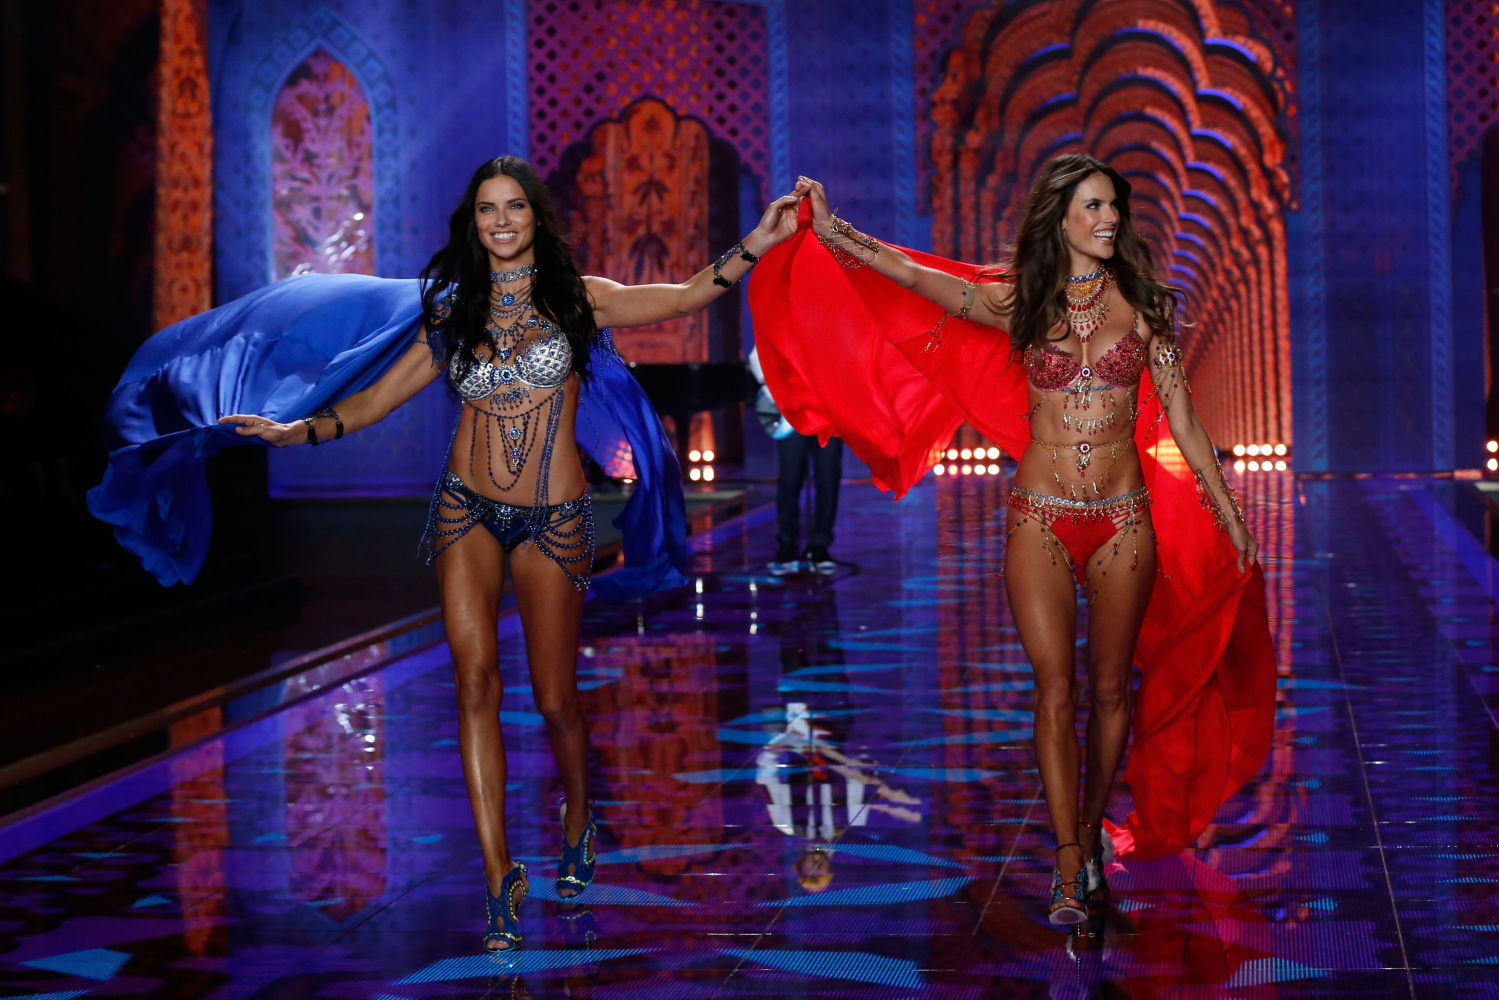 See the Best Looks From the 2014 Victoria's Secret Fashion Show